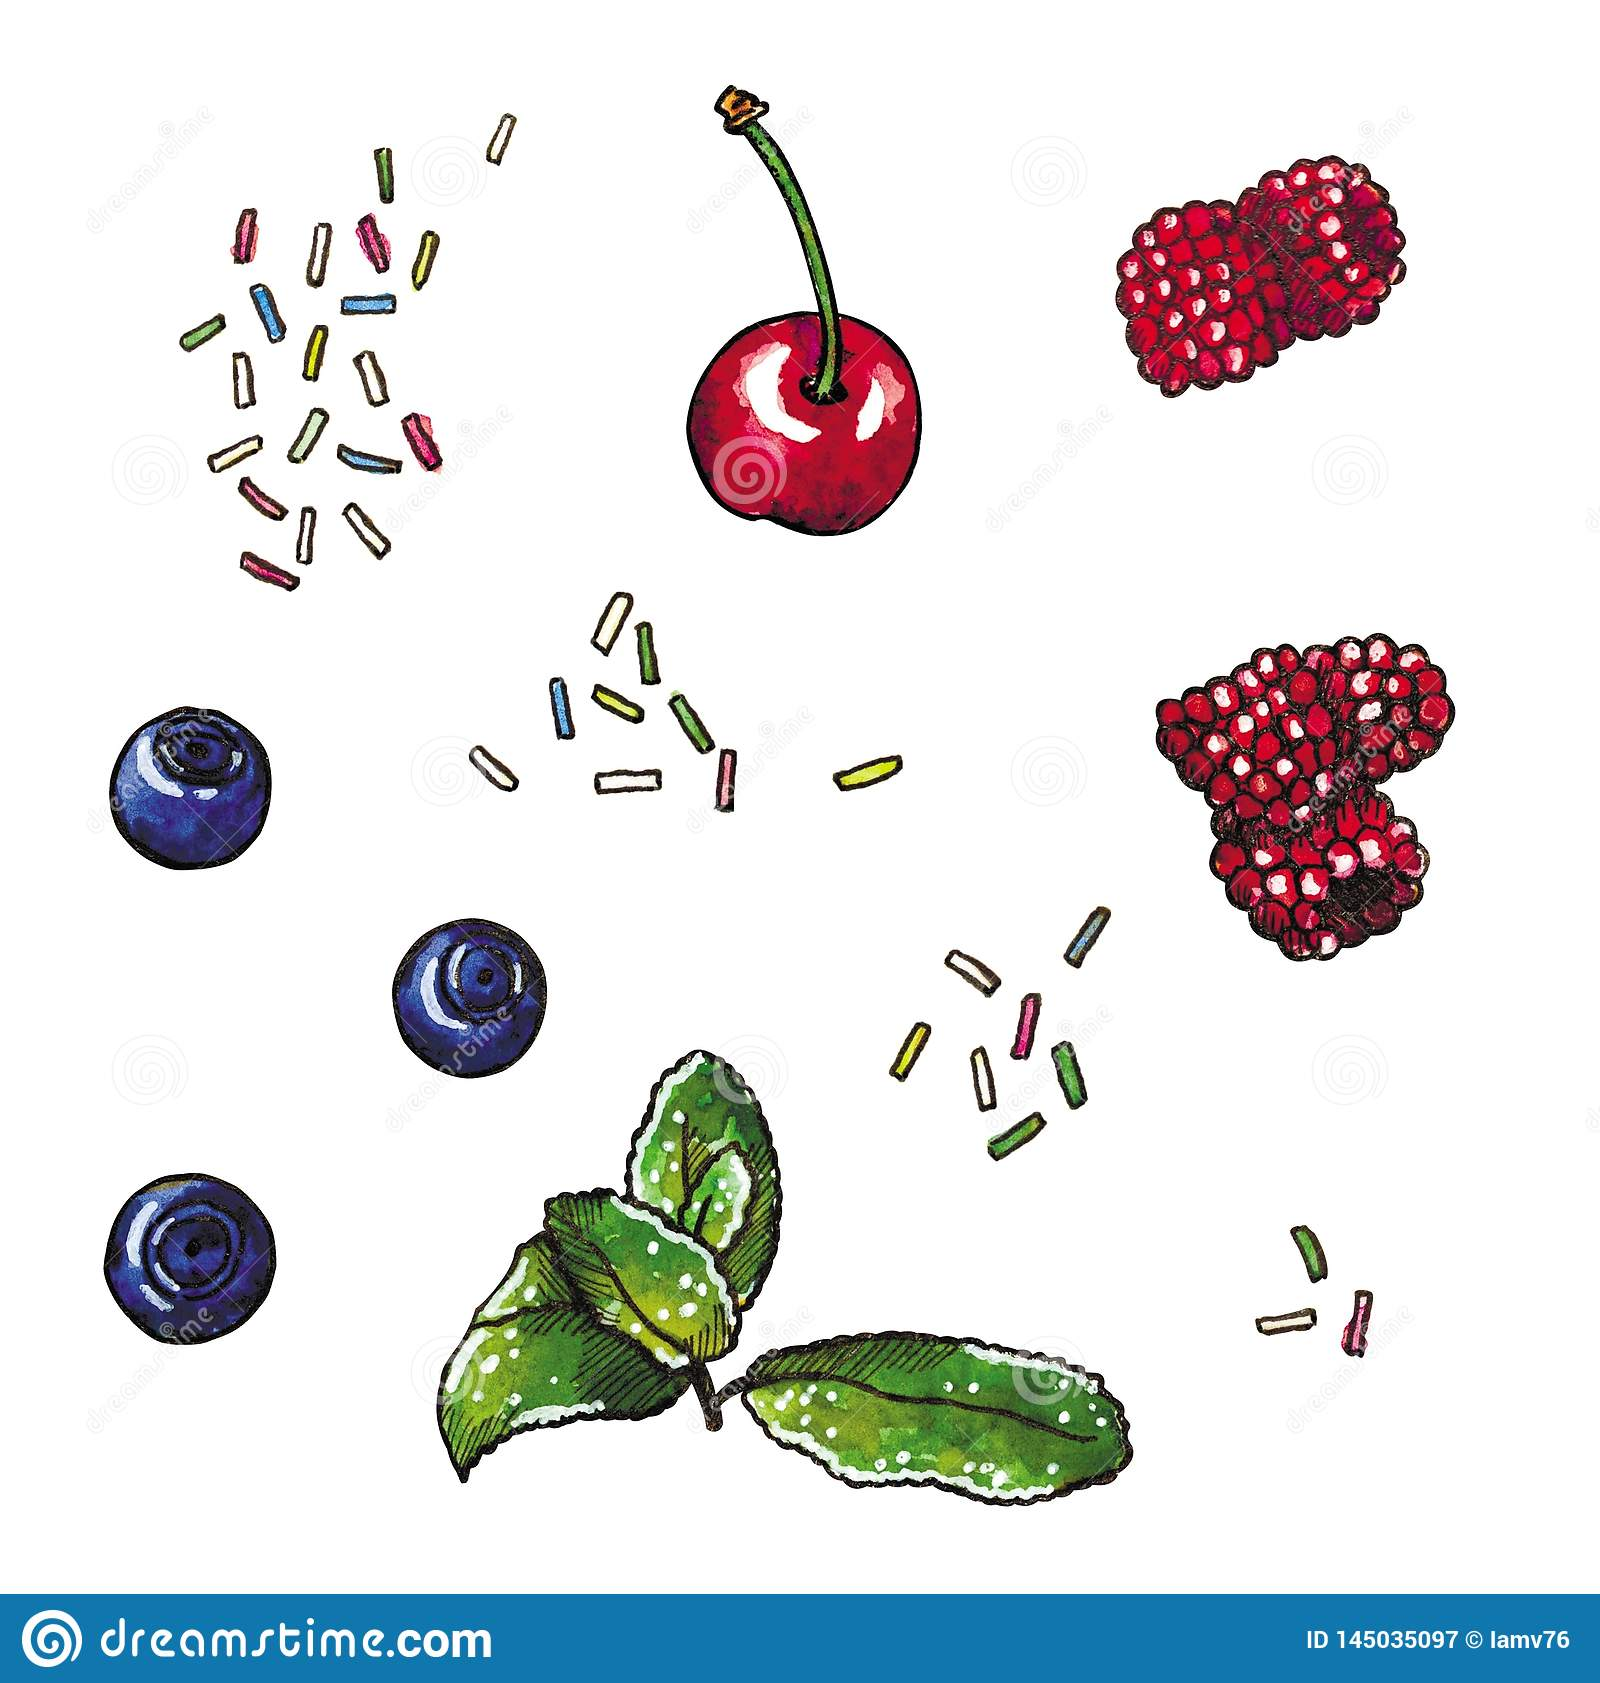 Clip art with berries, cherry, blueberry, raspberry, mint branch and sugary topping, hand drawn watercolor